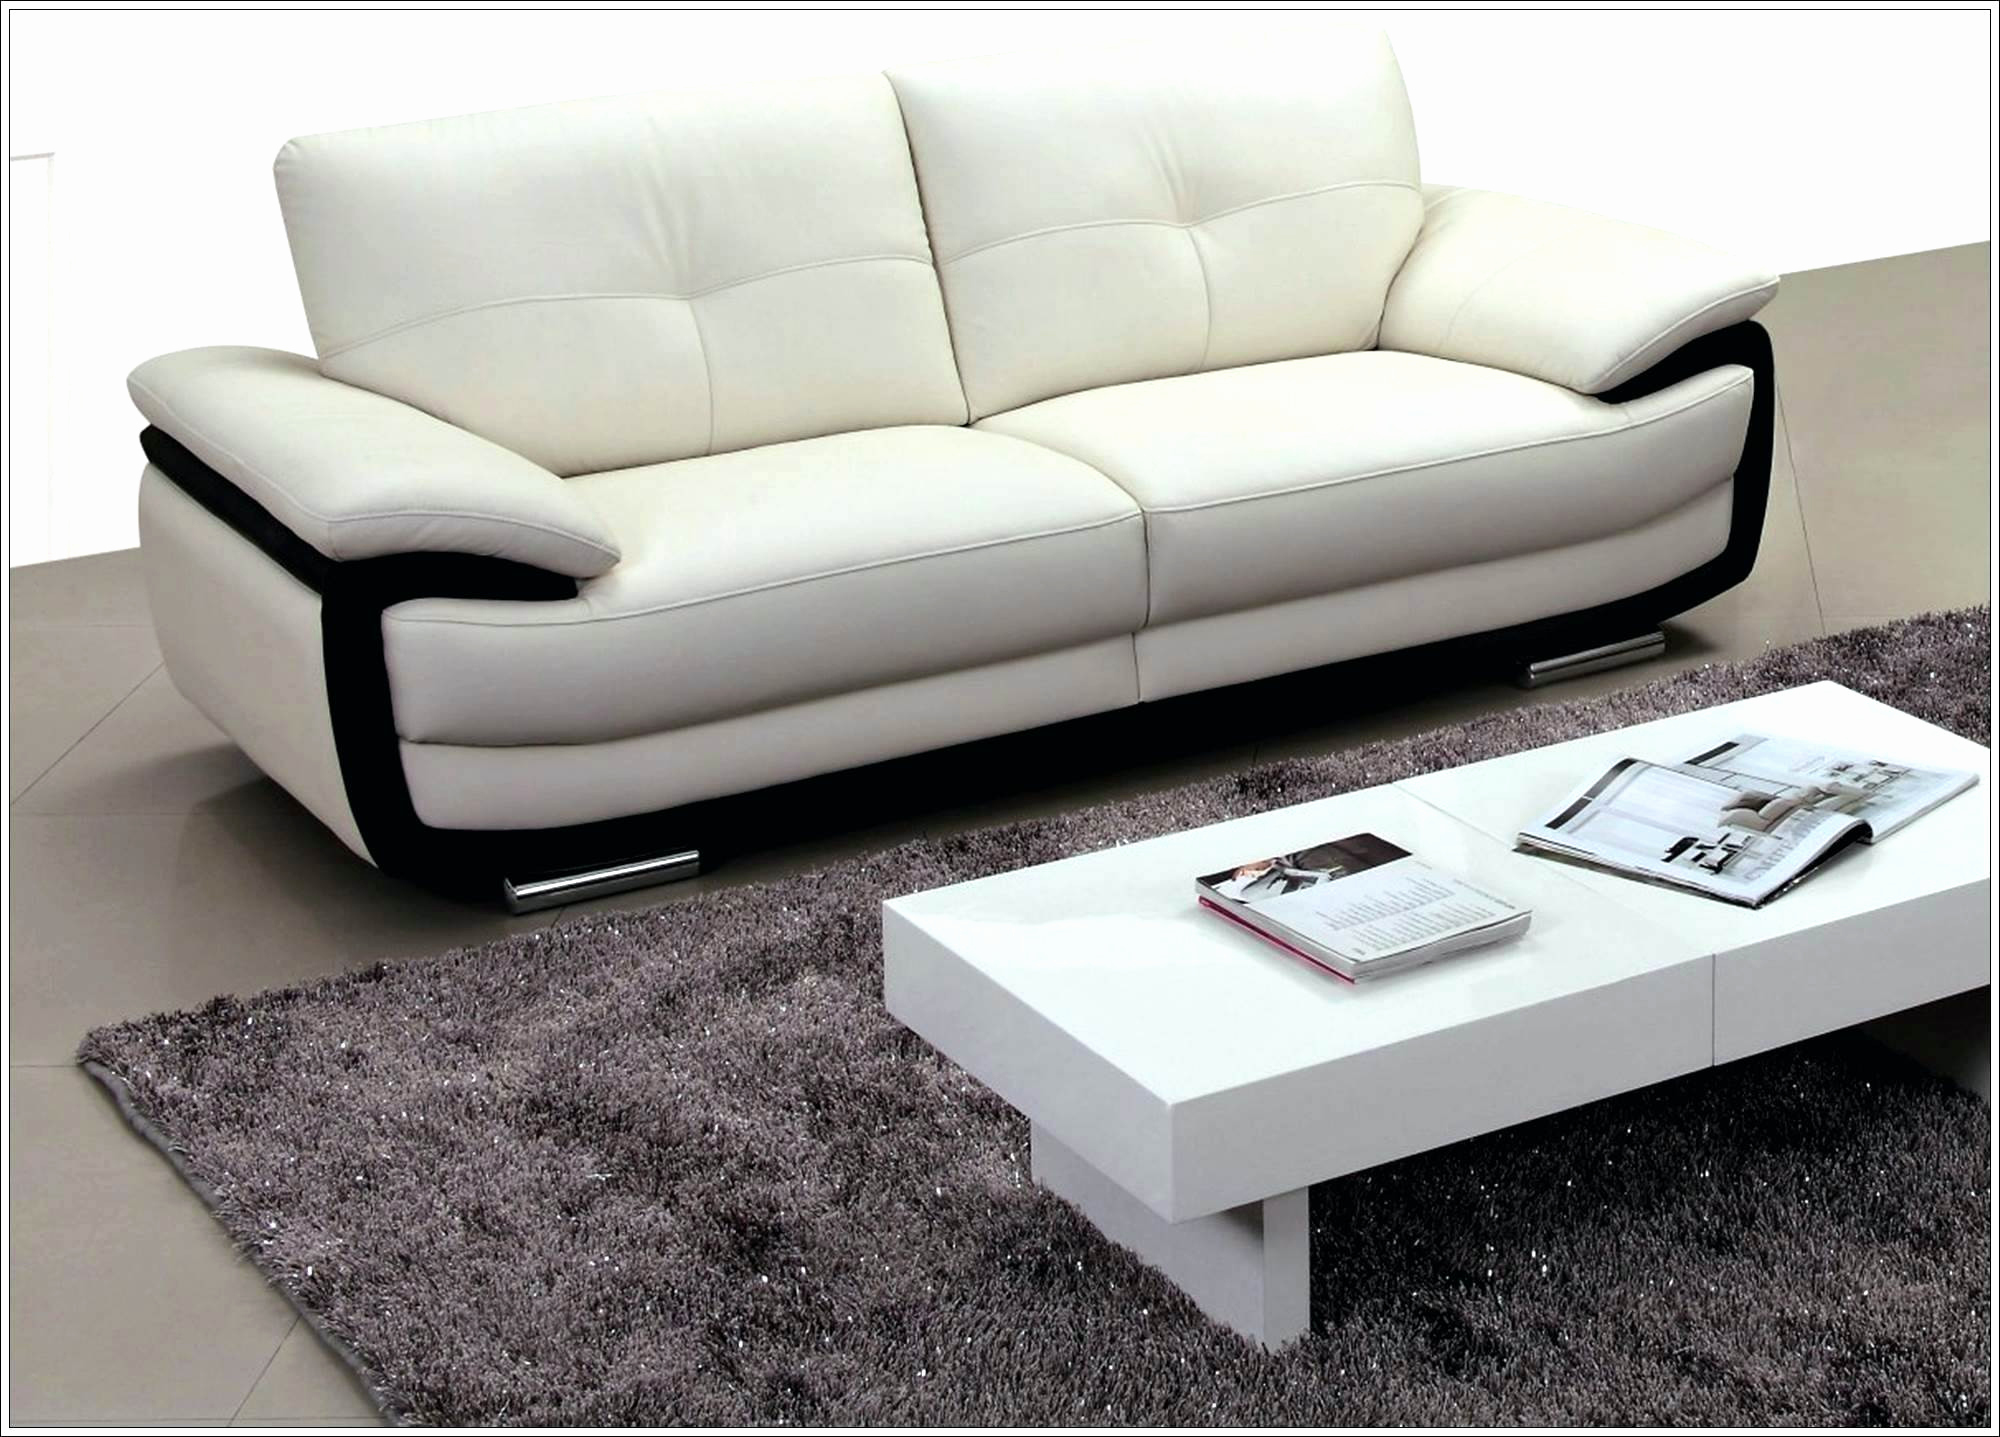 Canapé Angle Ikea Convertible Luxe Collection Canap Convertible 3 Places Conforama 11 Lit 2 Pas Cher Ikea but